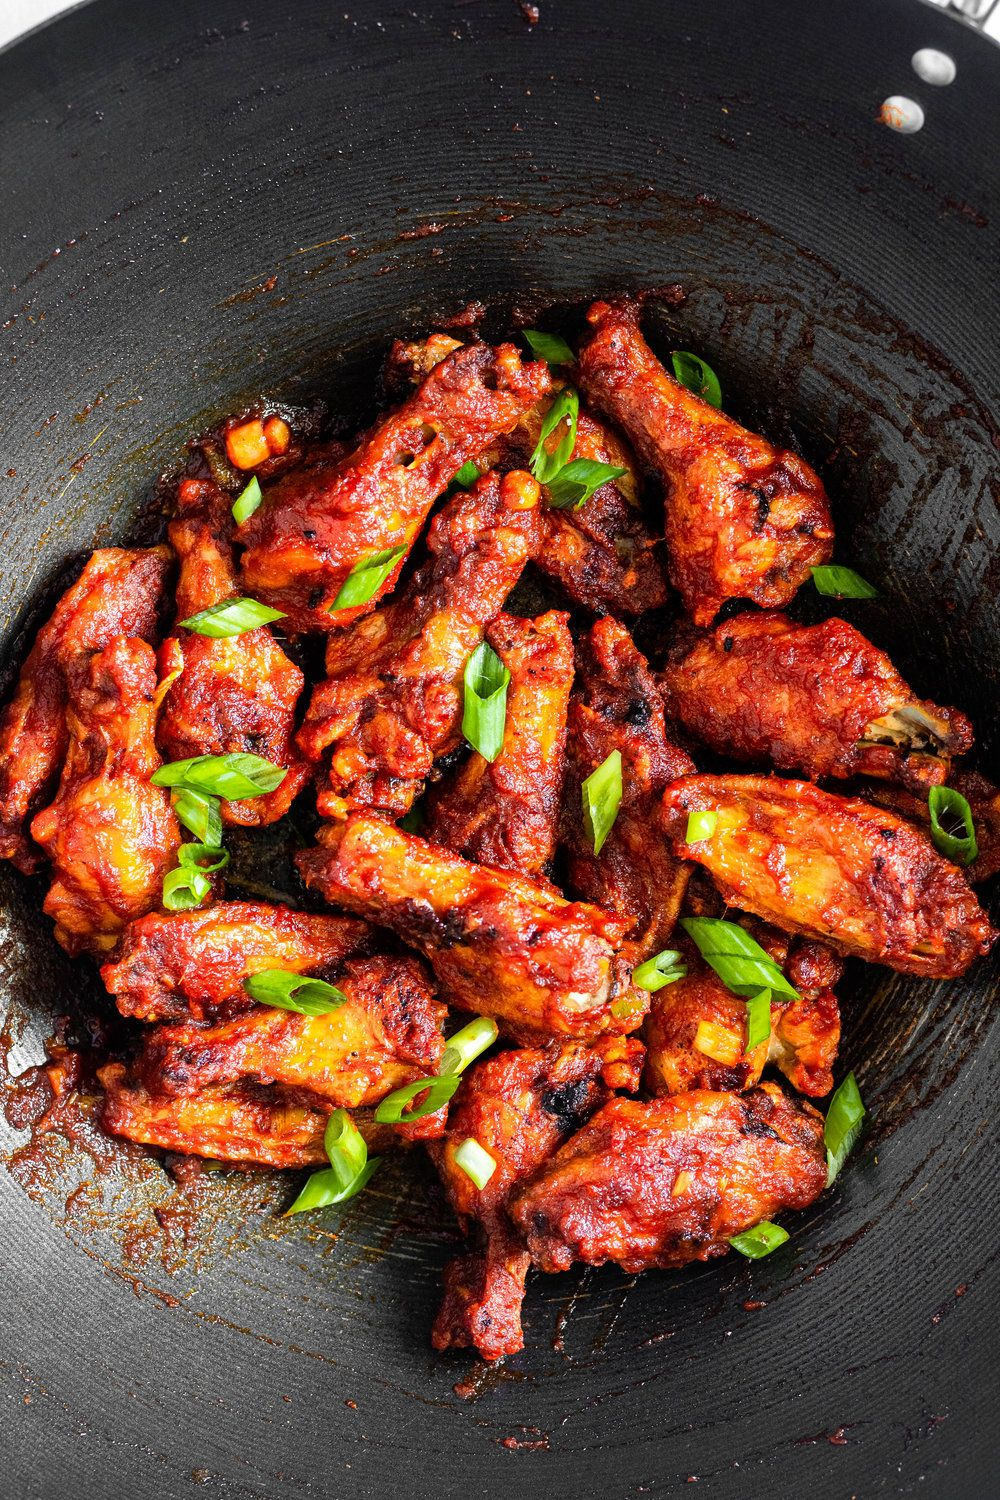 Crispy Thai Red Curry Chicken Wings All The Healthy Things Curry Chicken Wings Recipe Red Curry Chicken Chicken Wing Recipes